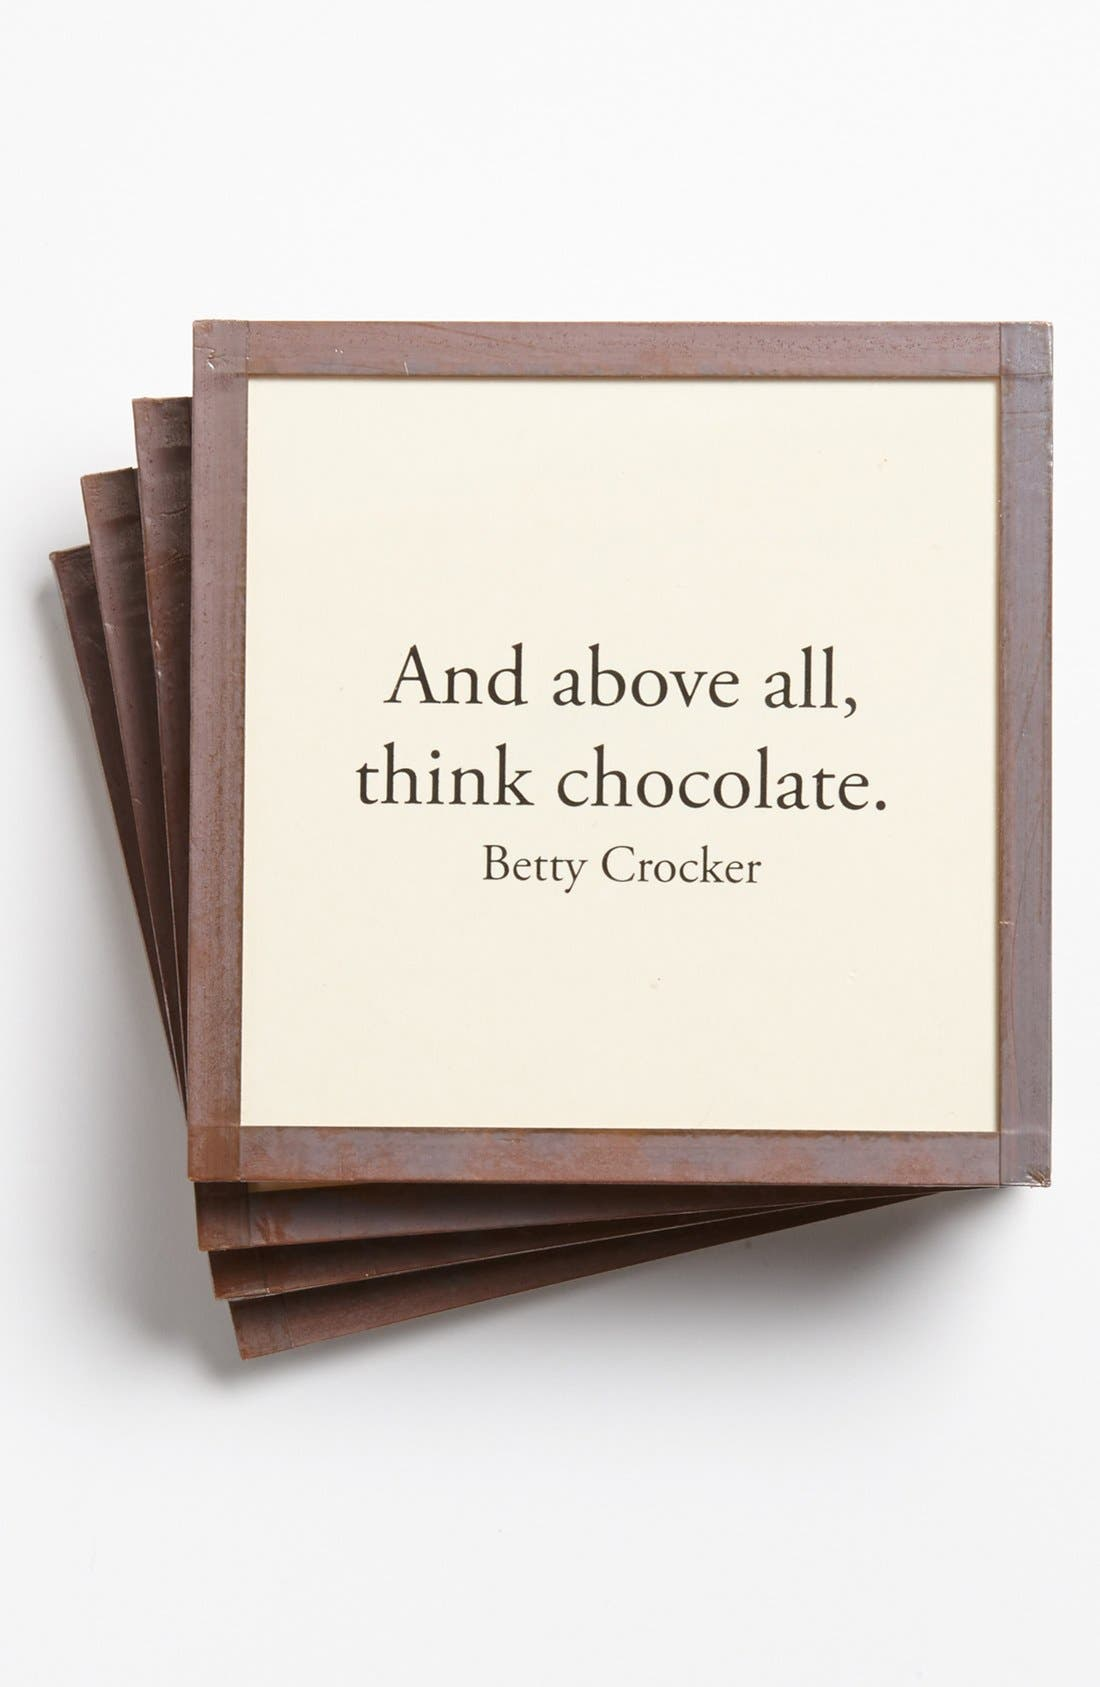 Alternate Image 1 Selected - Ben's Garden 'And Above All, Think Chocolate' Coaster Set